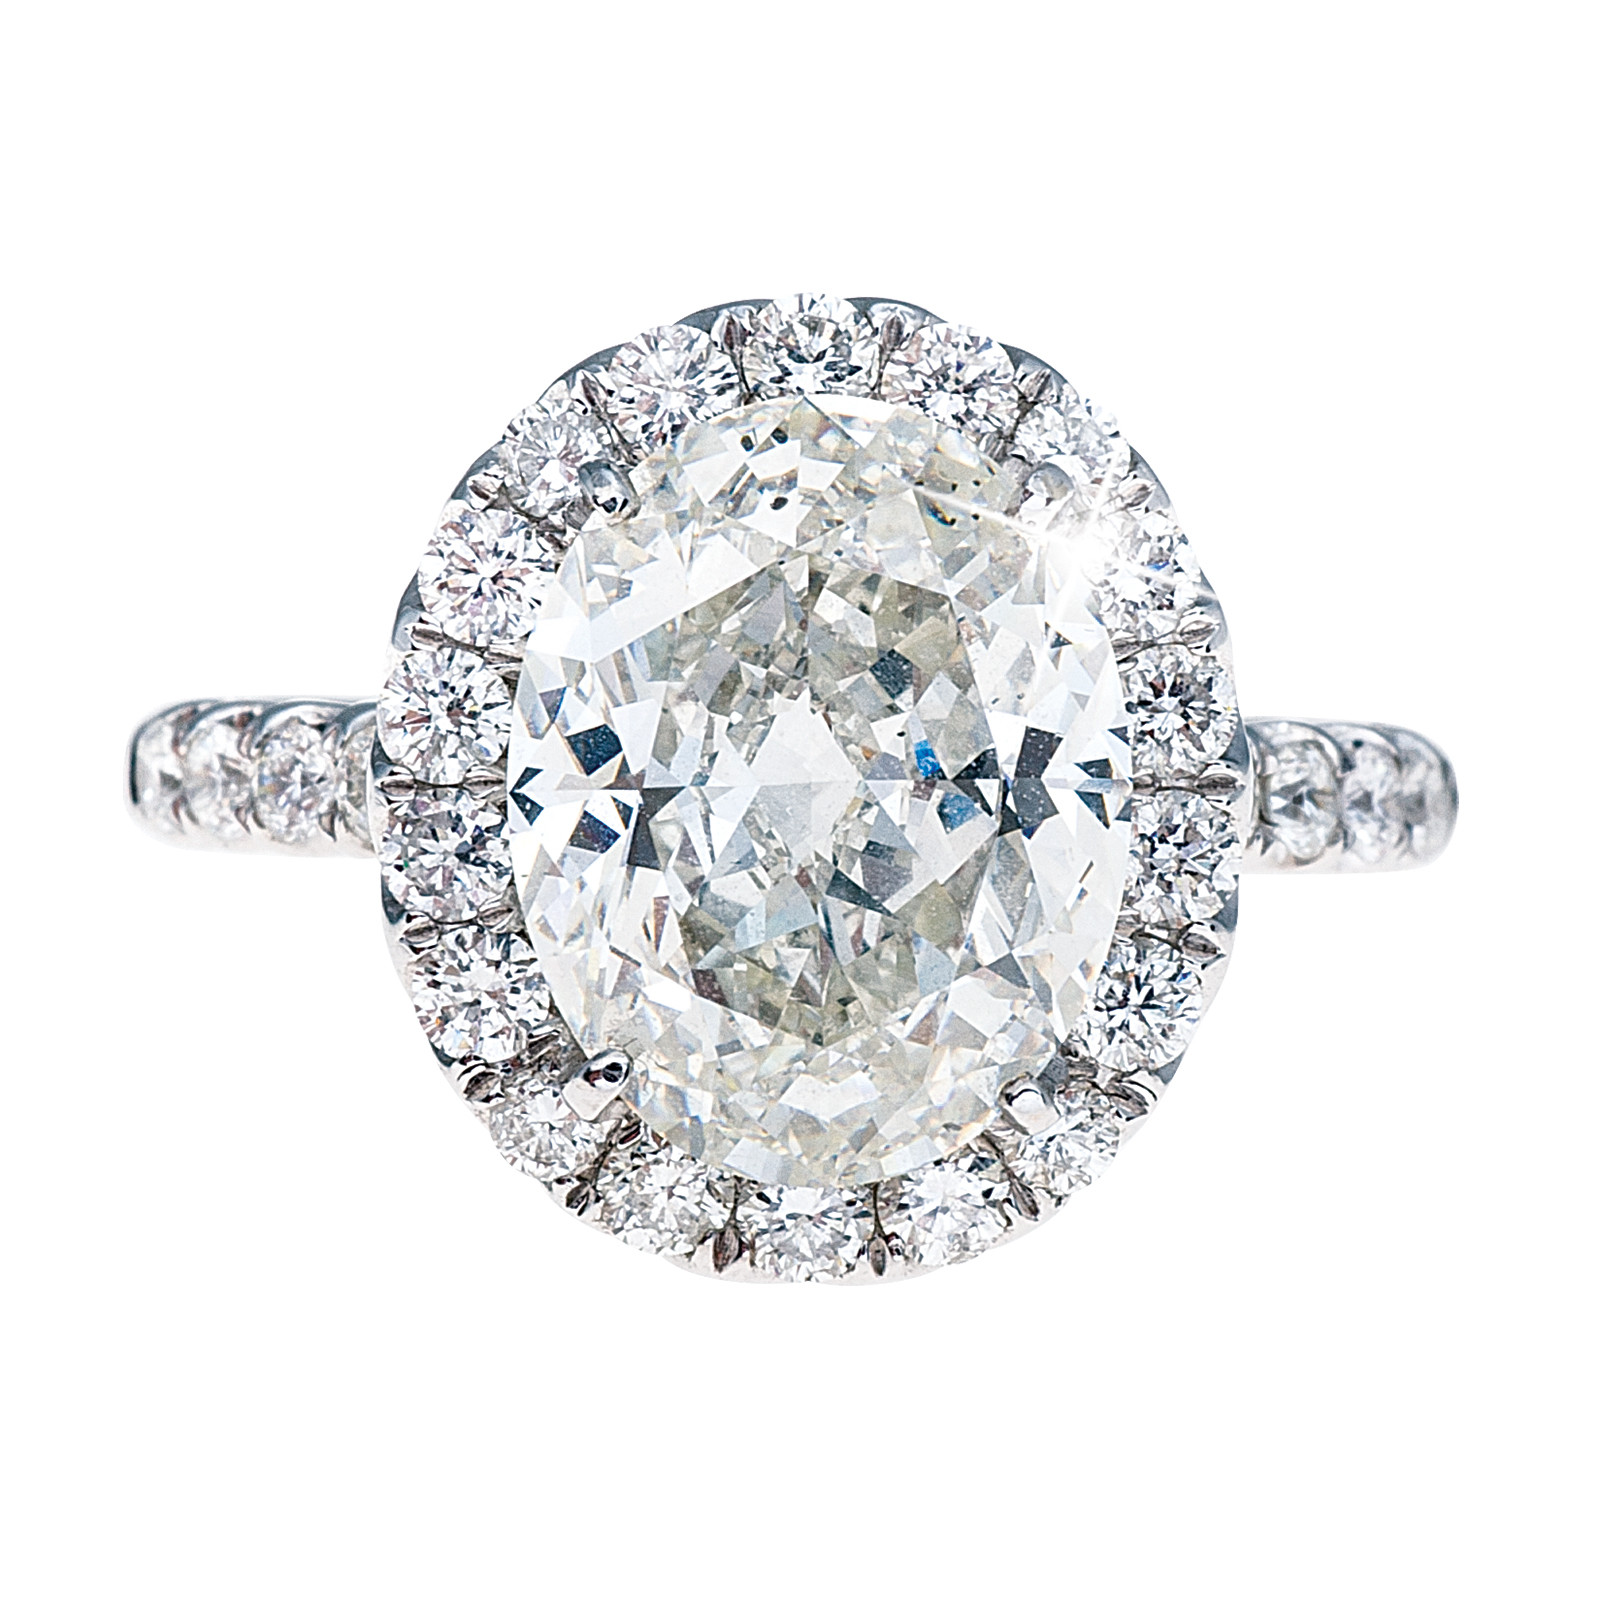 New 4.01 Oval Diamond Engagement Ring